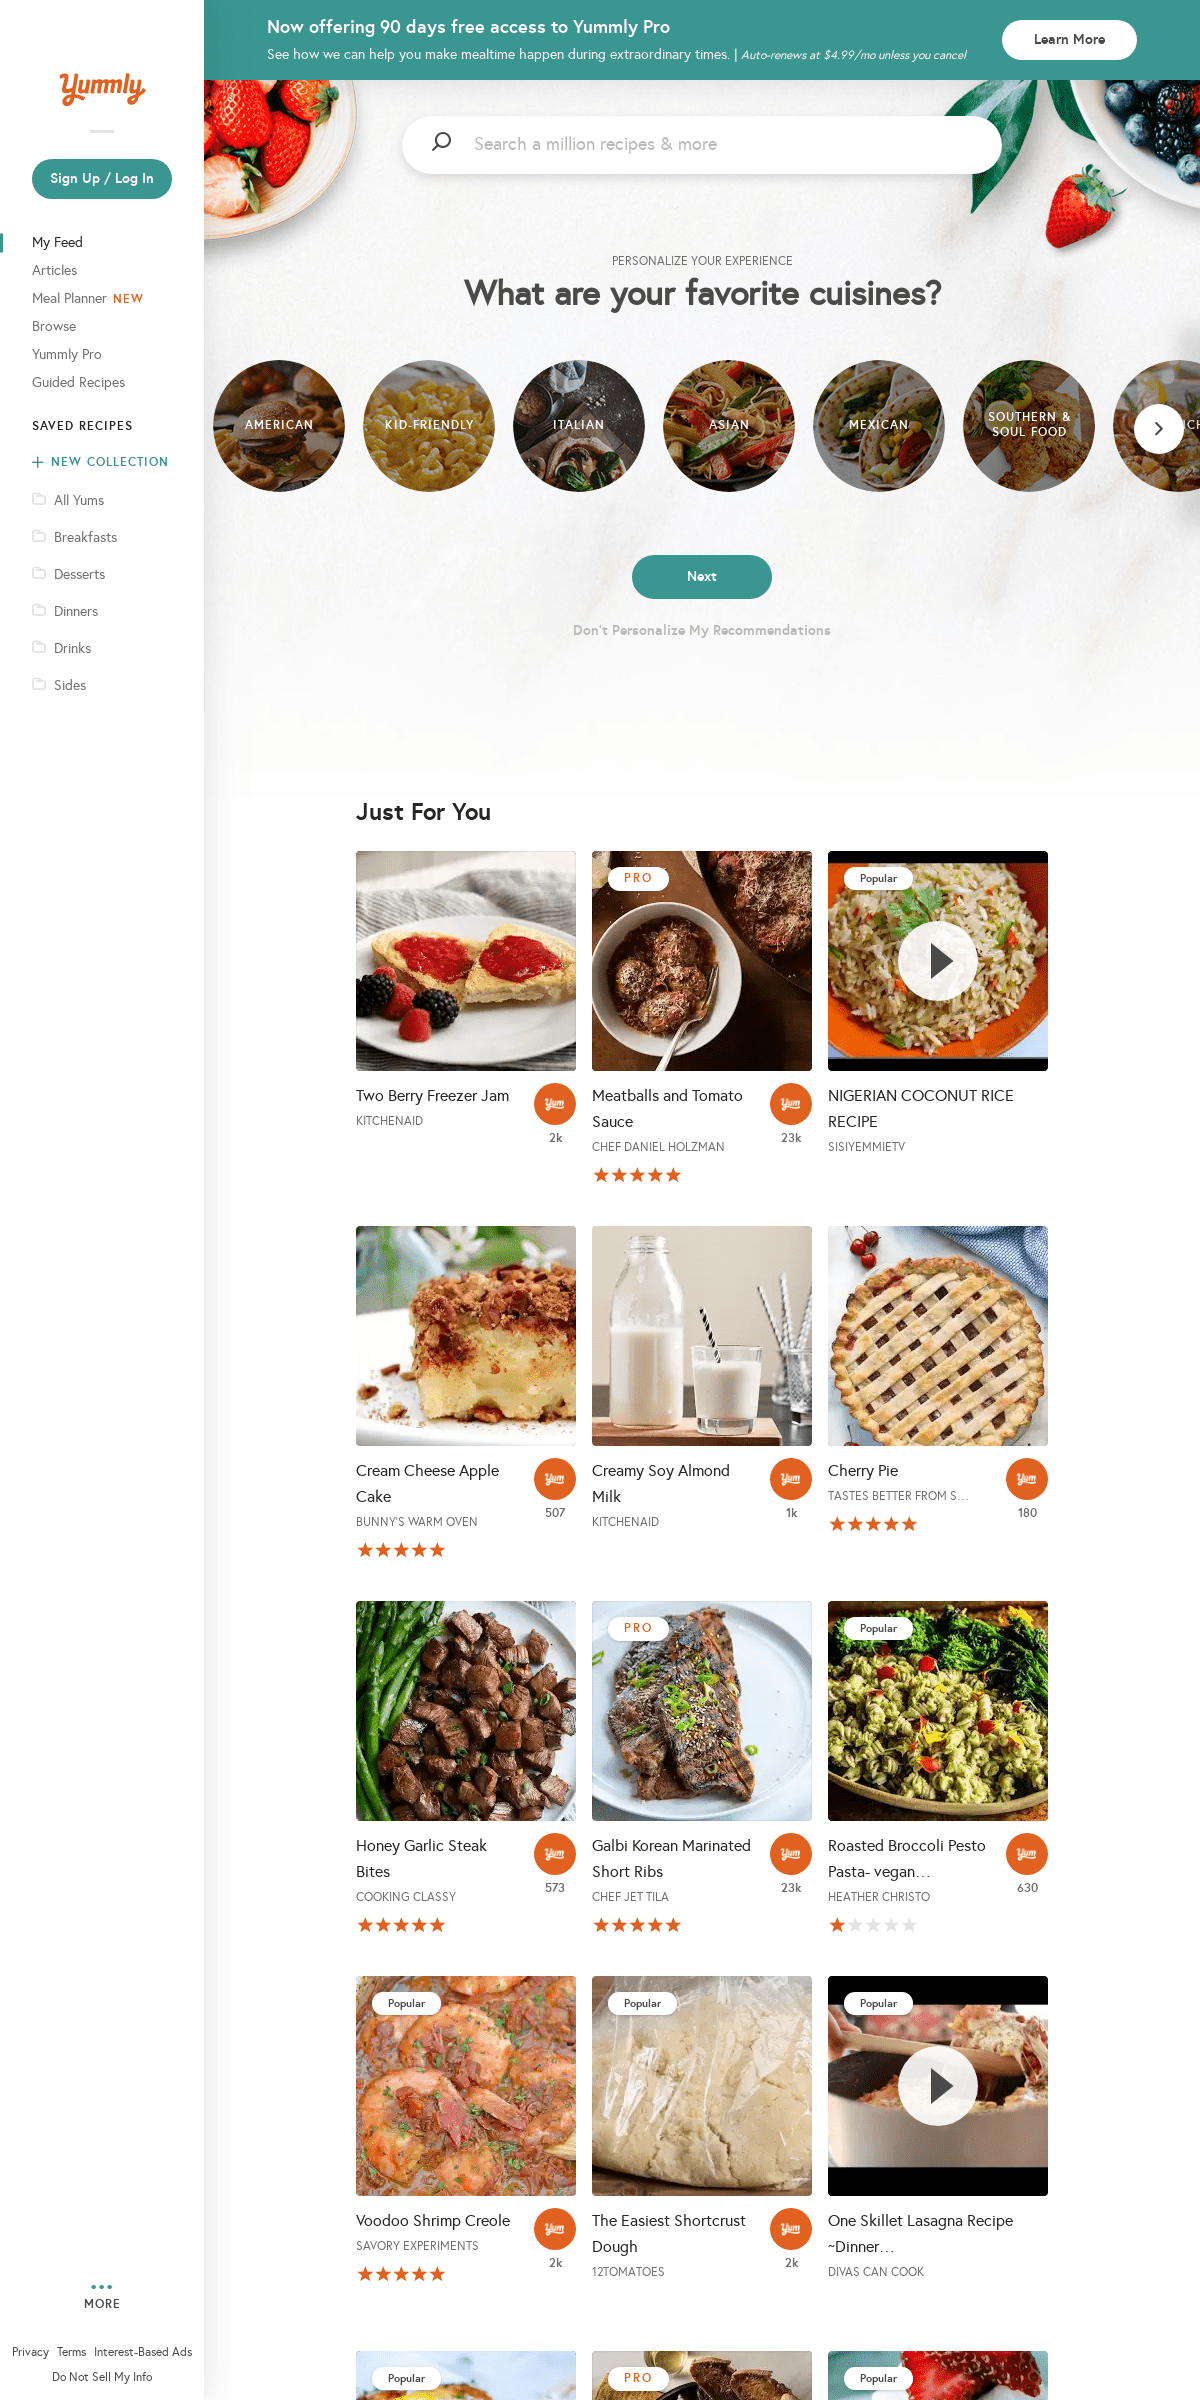 Yummly- Personalized Recipe Recommendations and Search